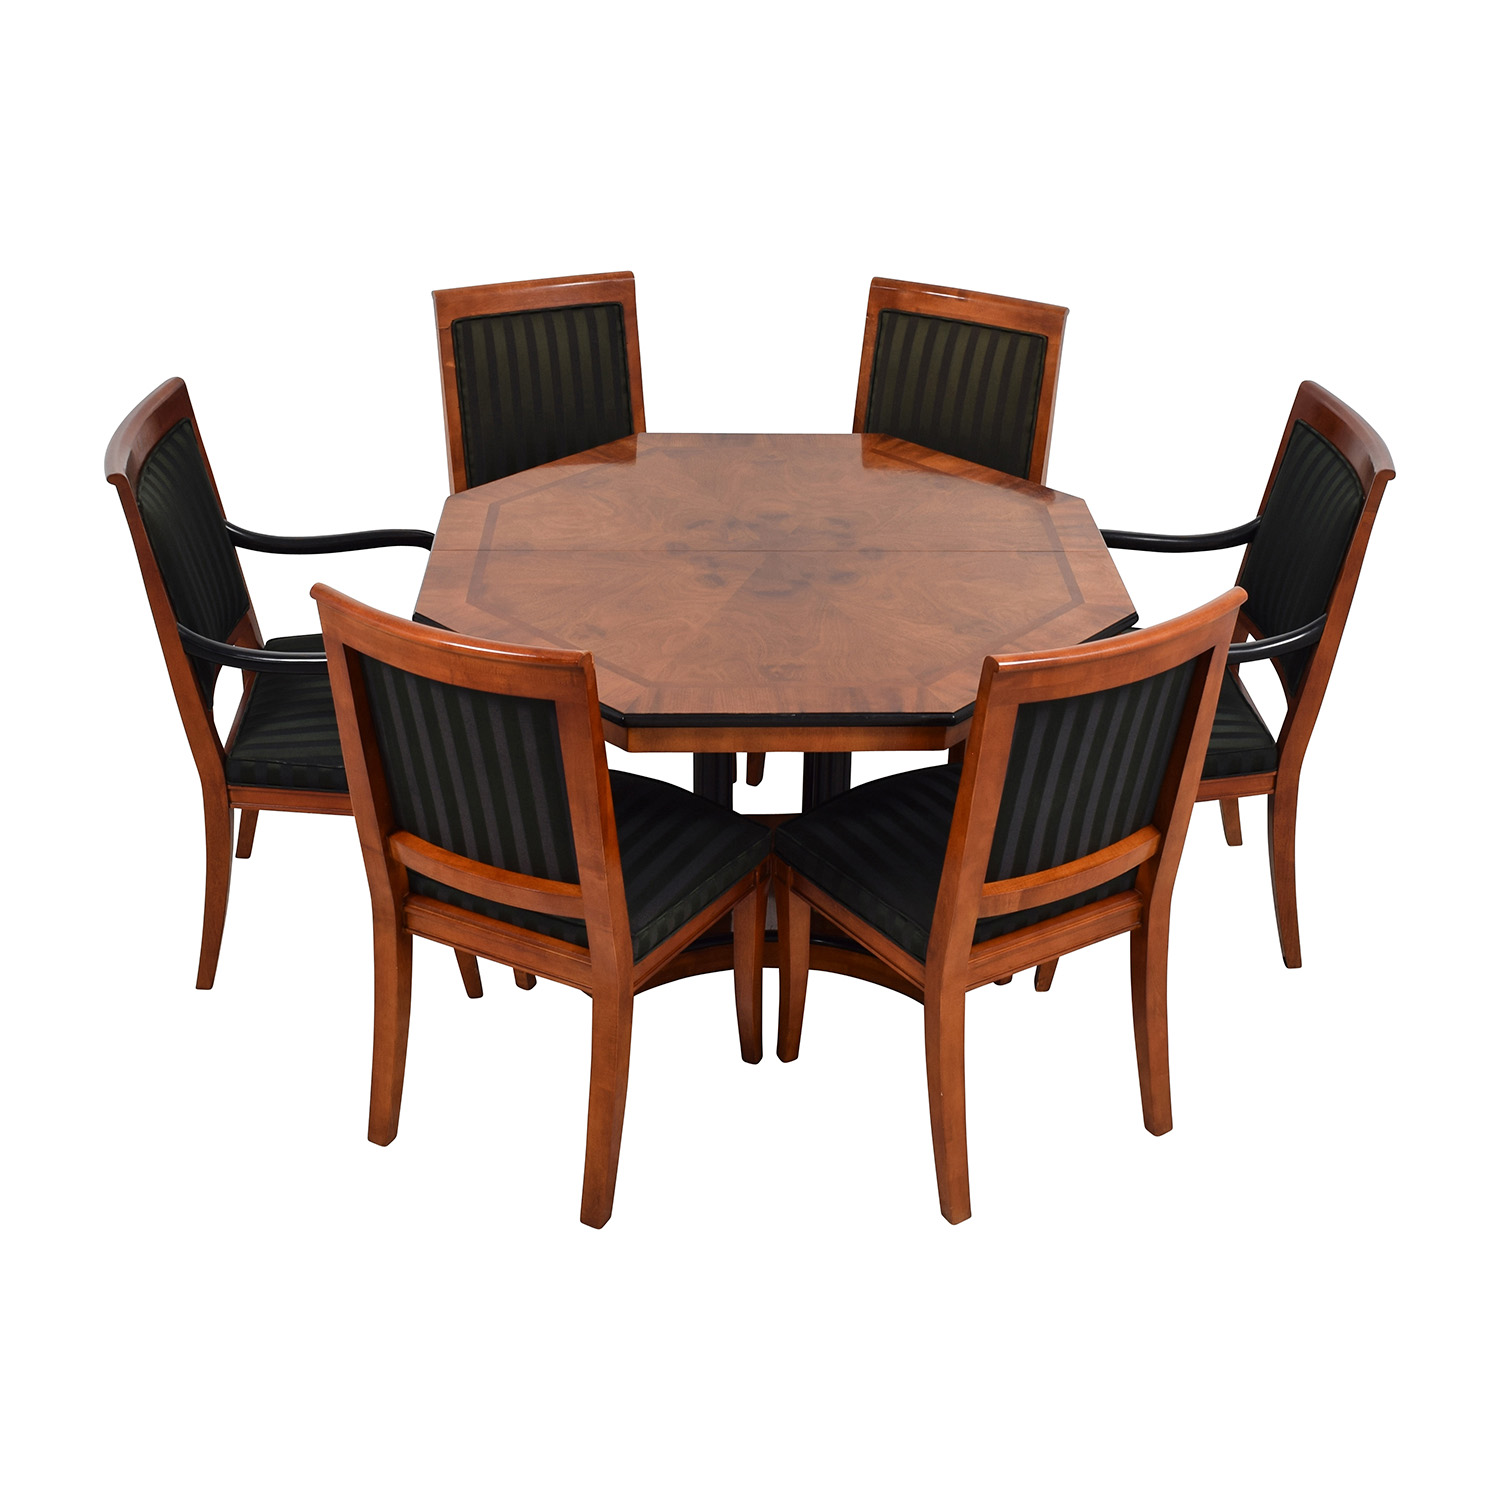 Secondhand Chairs And Tables: Dining Sets: Used Dining Sets For Sale